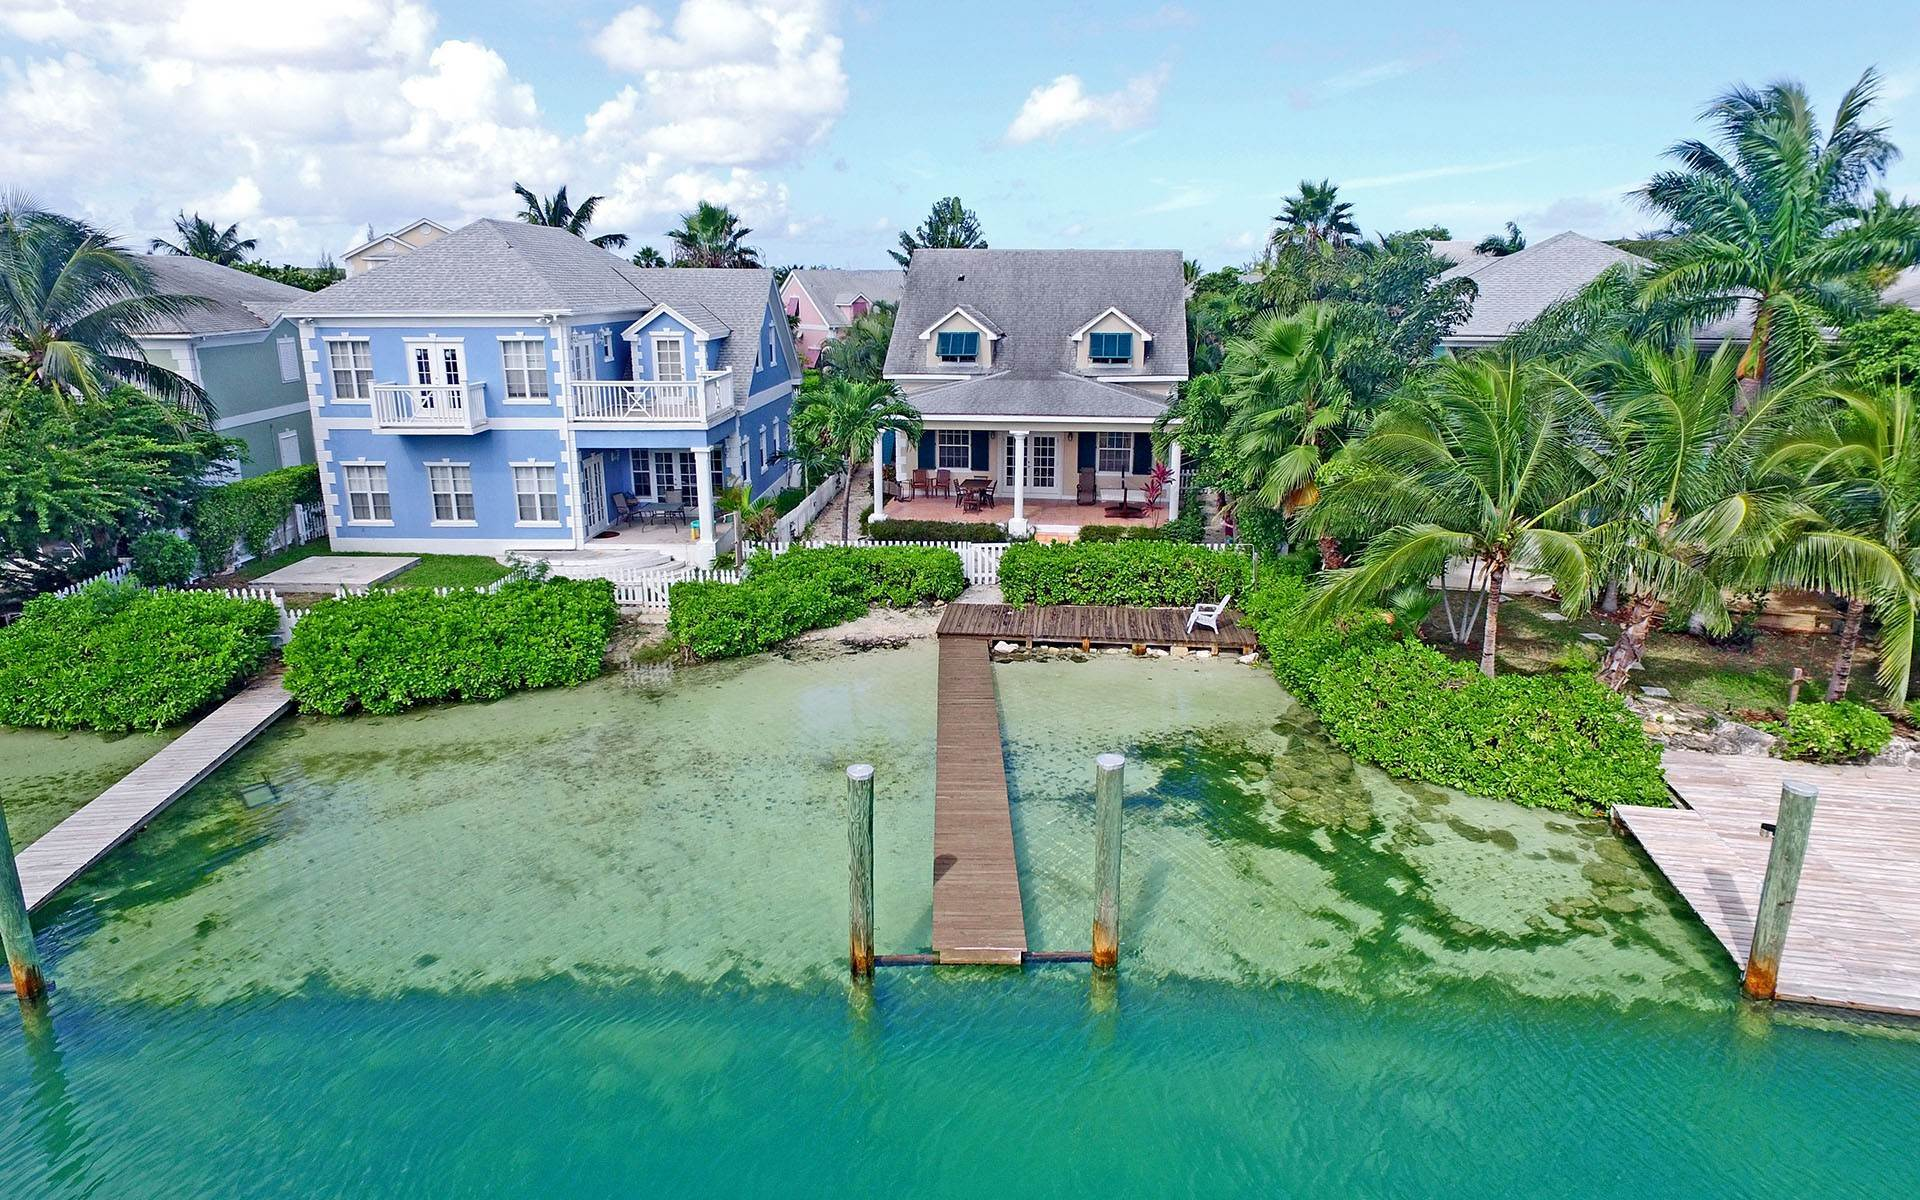 19. Single Family Homes for Rent at Home with dock space Jacaranda Sandyport Sandyport, Cable Beach, Nassau And Paradise Island Bahamas